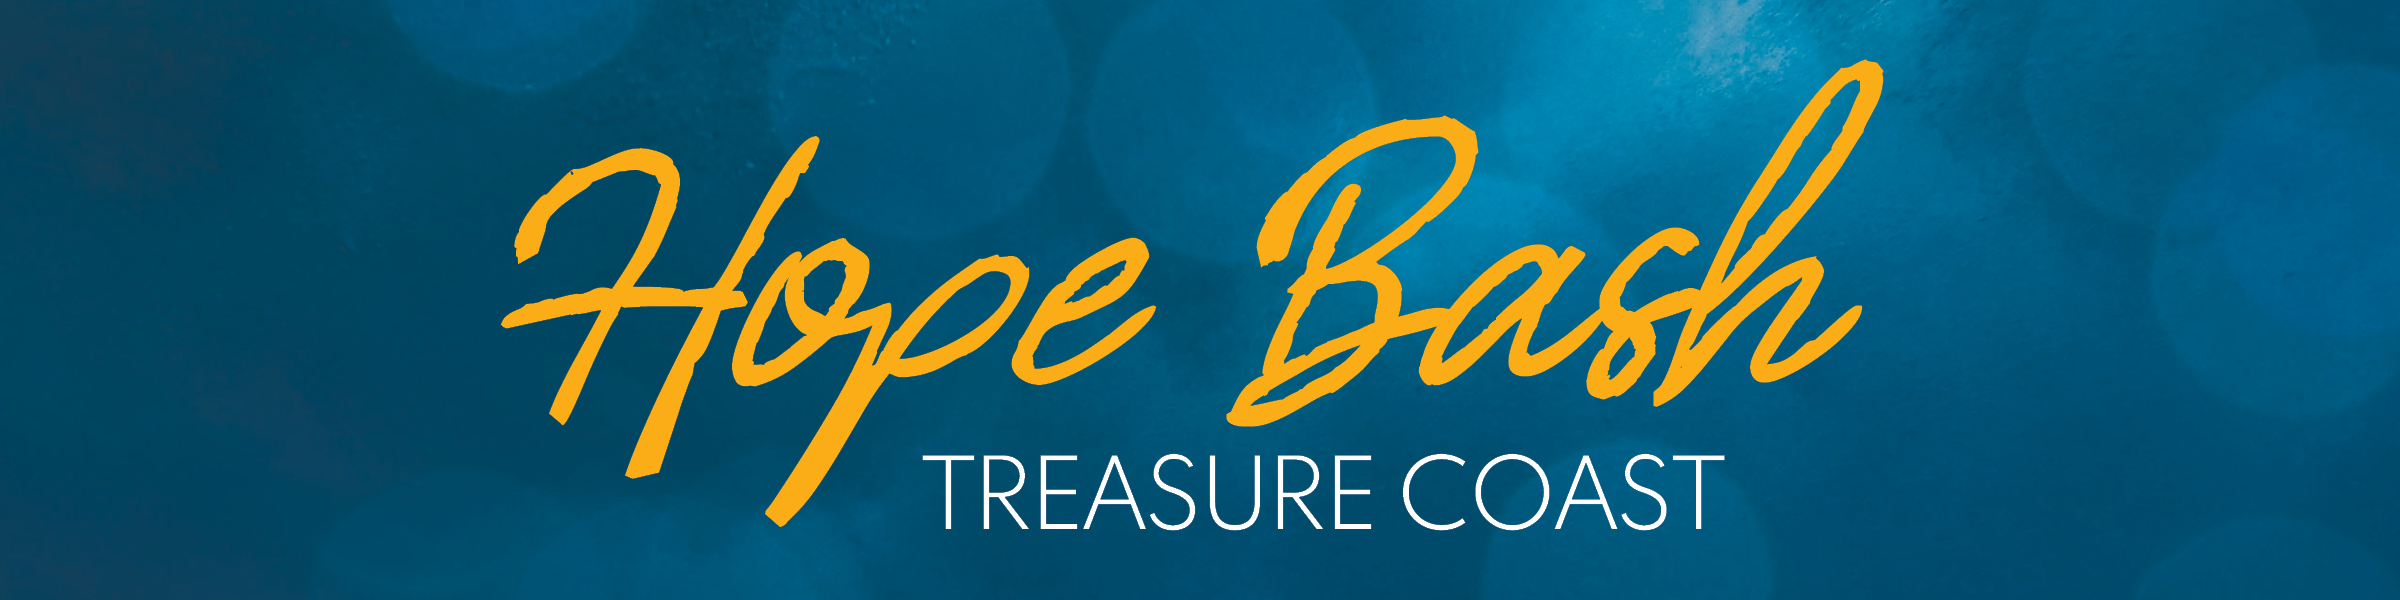 Hope Bash Treasure Coast Header iamge